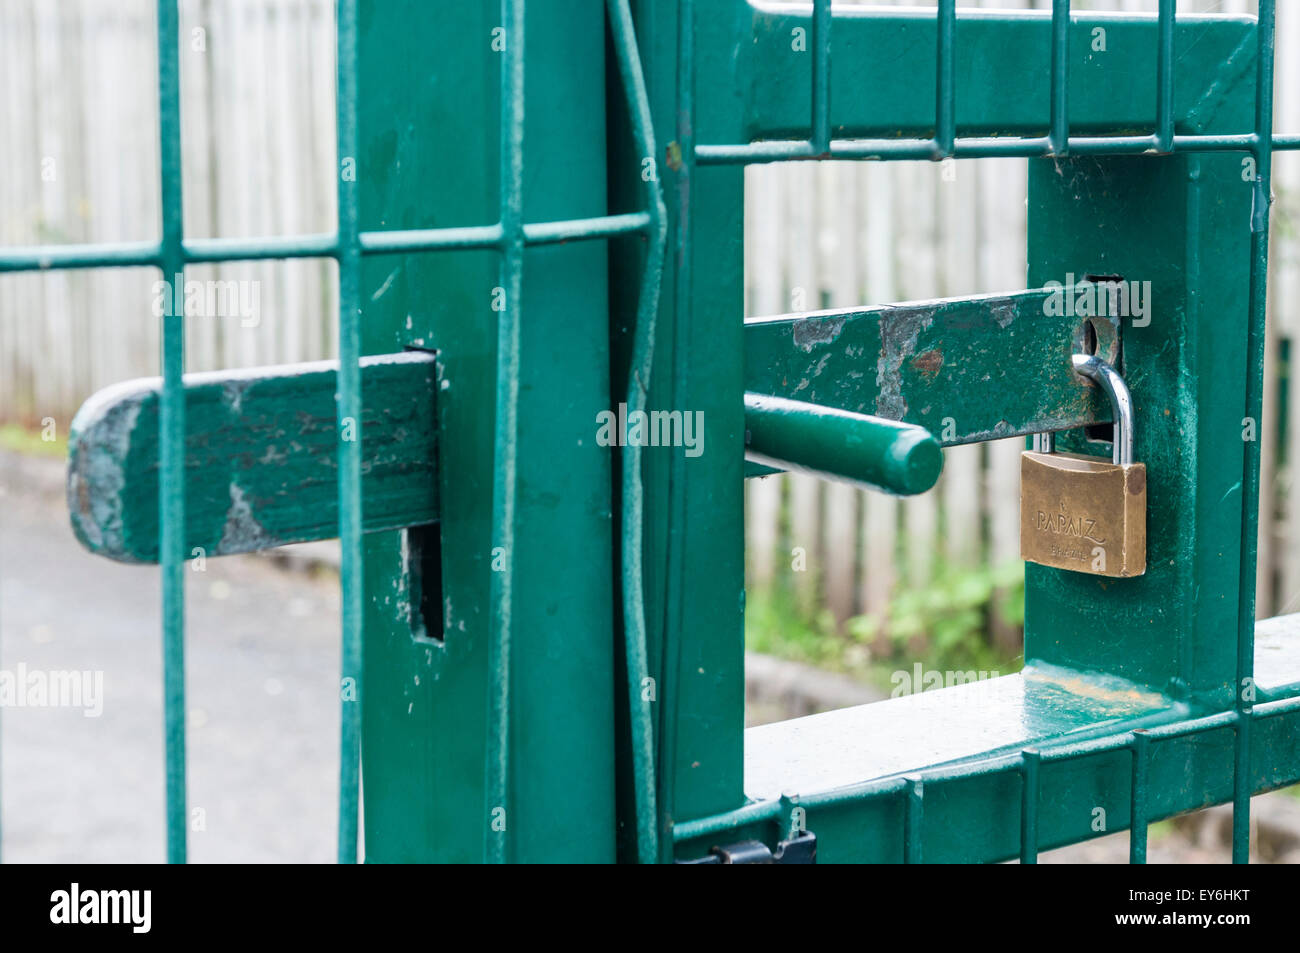 Padlock on a steel security gate - Stock Image